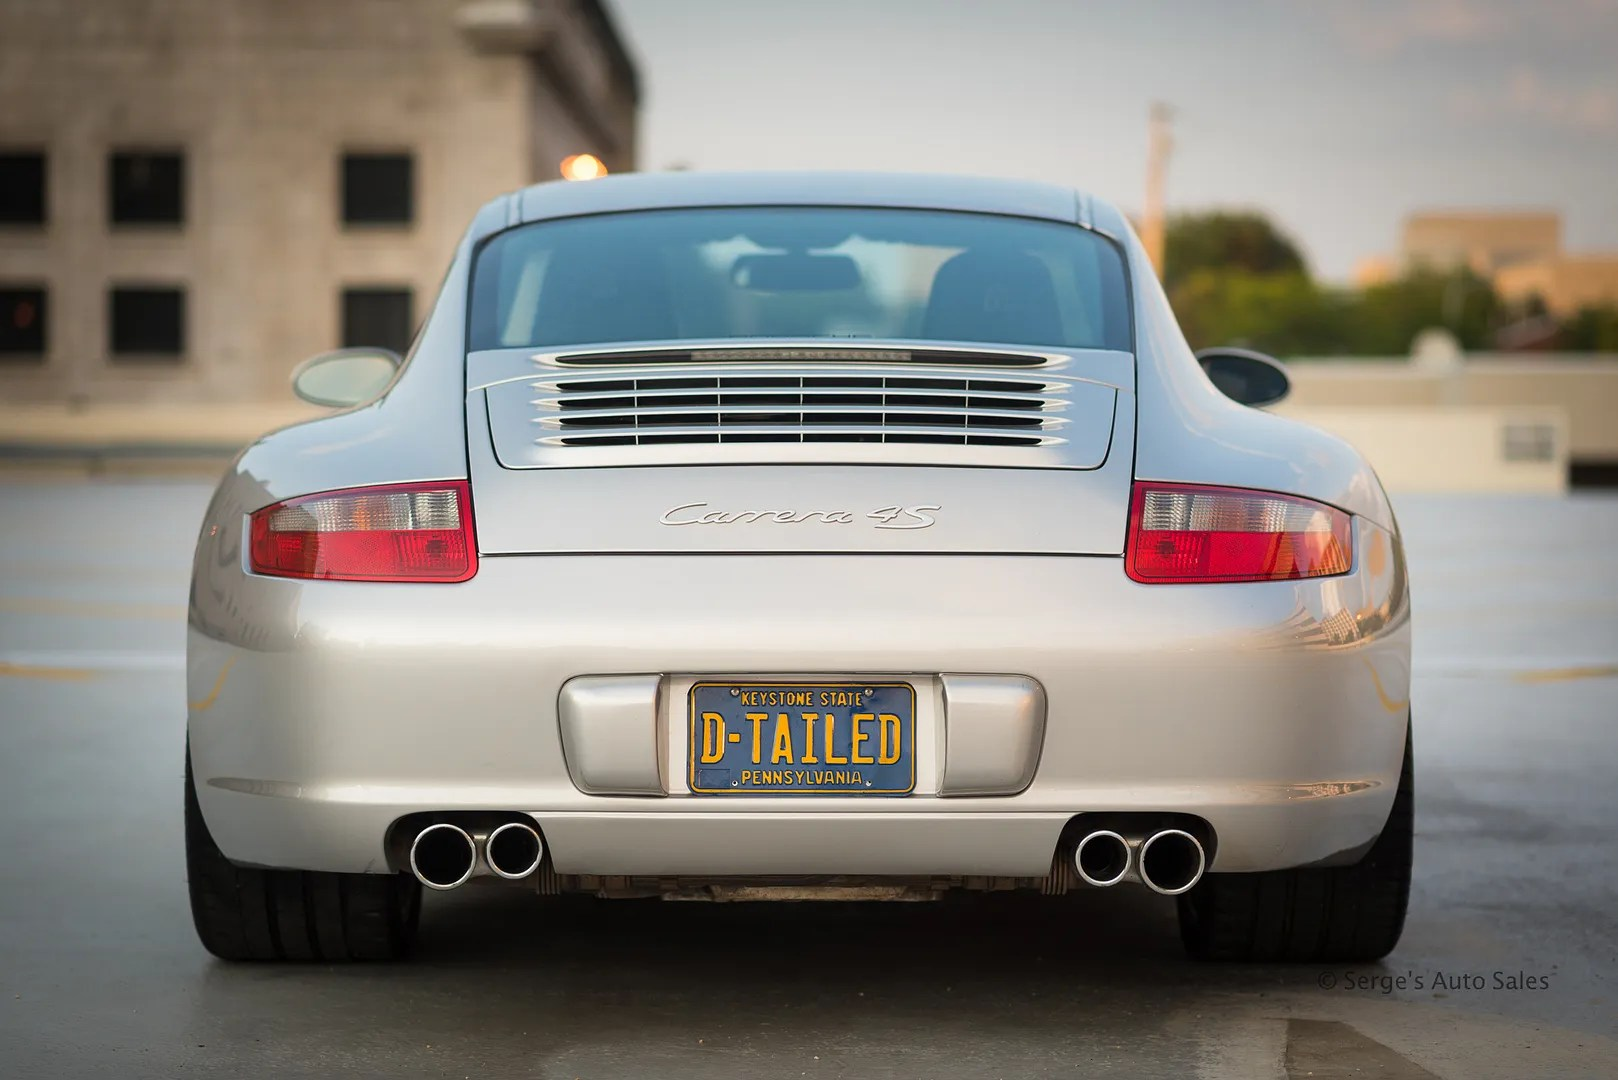 photo Serges-auto-sales-porsche-911-for-sale-scranton-pennsylvania-7_zpslbwb9k3j.jpg